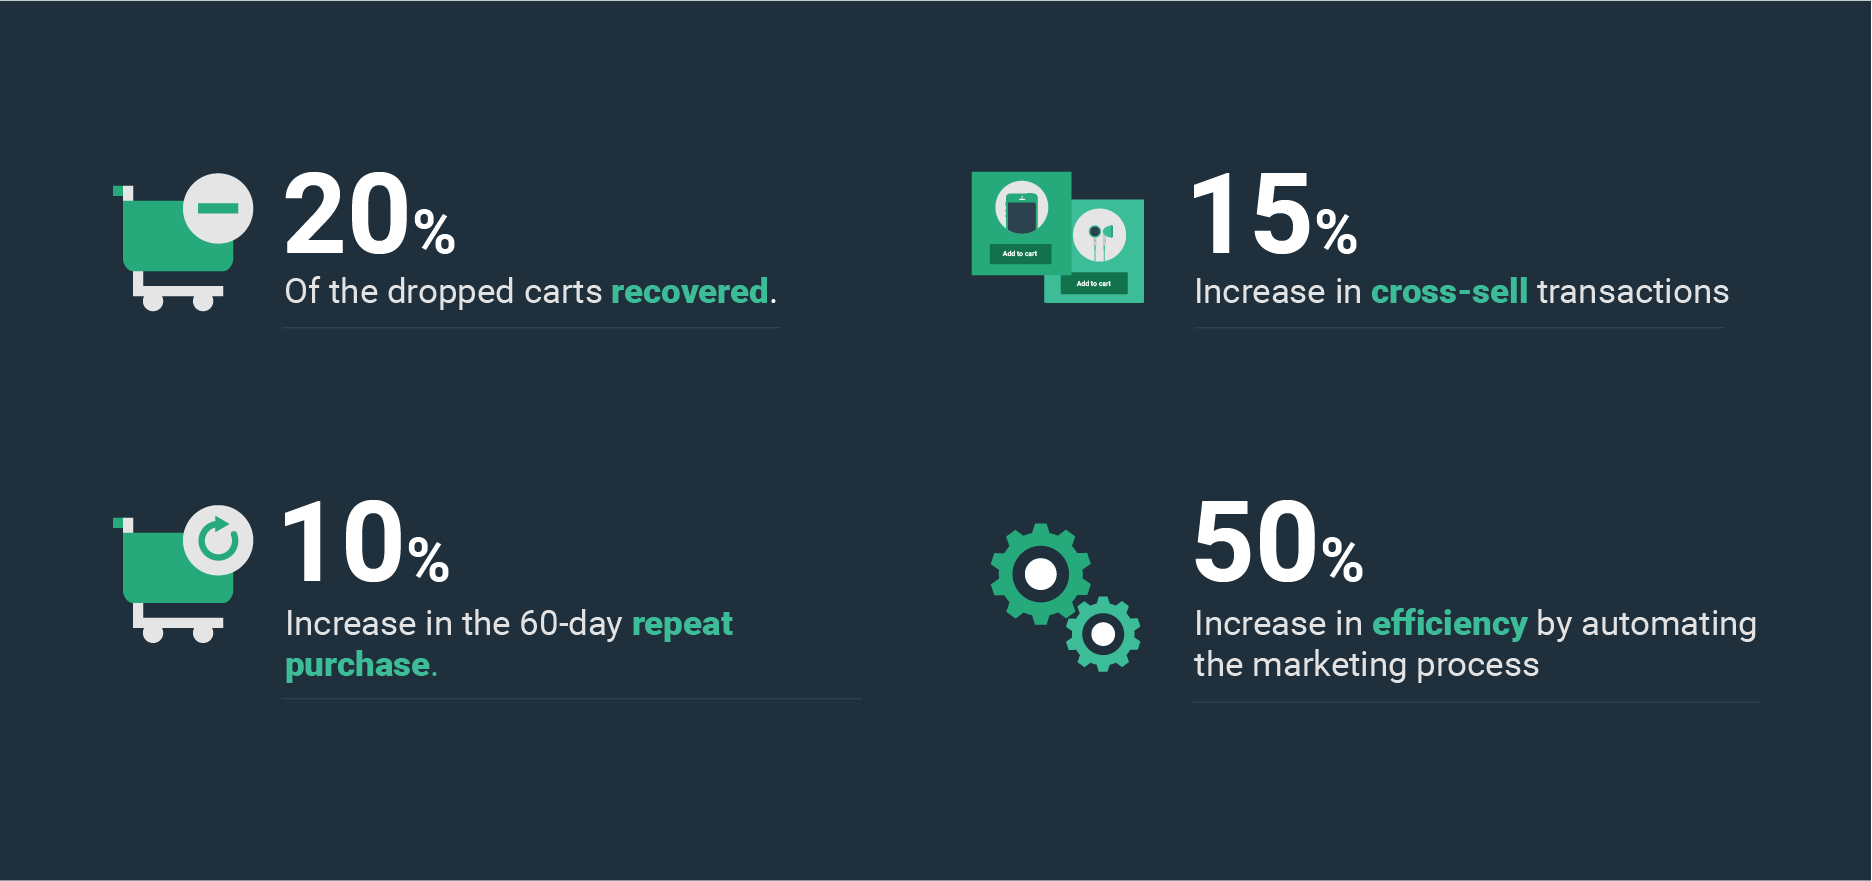 increase-in-cross-sell-carts-recovered-repeat-purchase-customer-retention